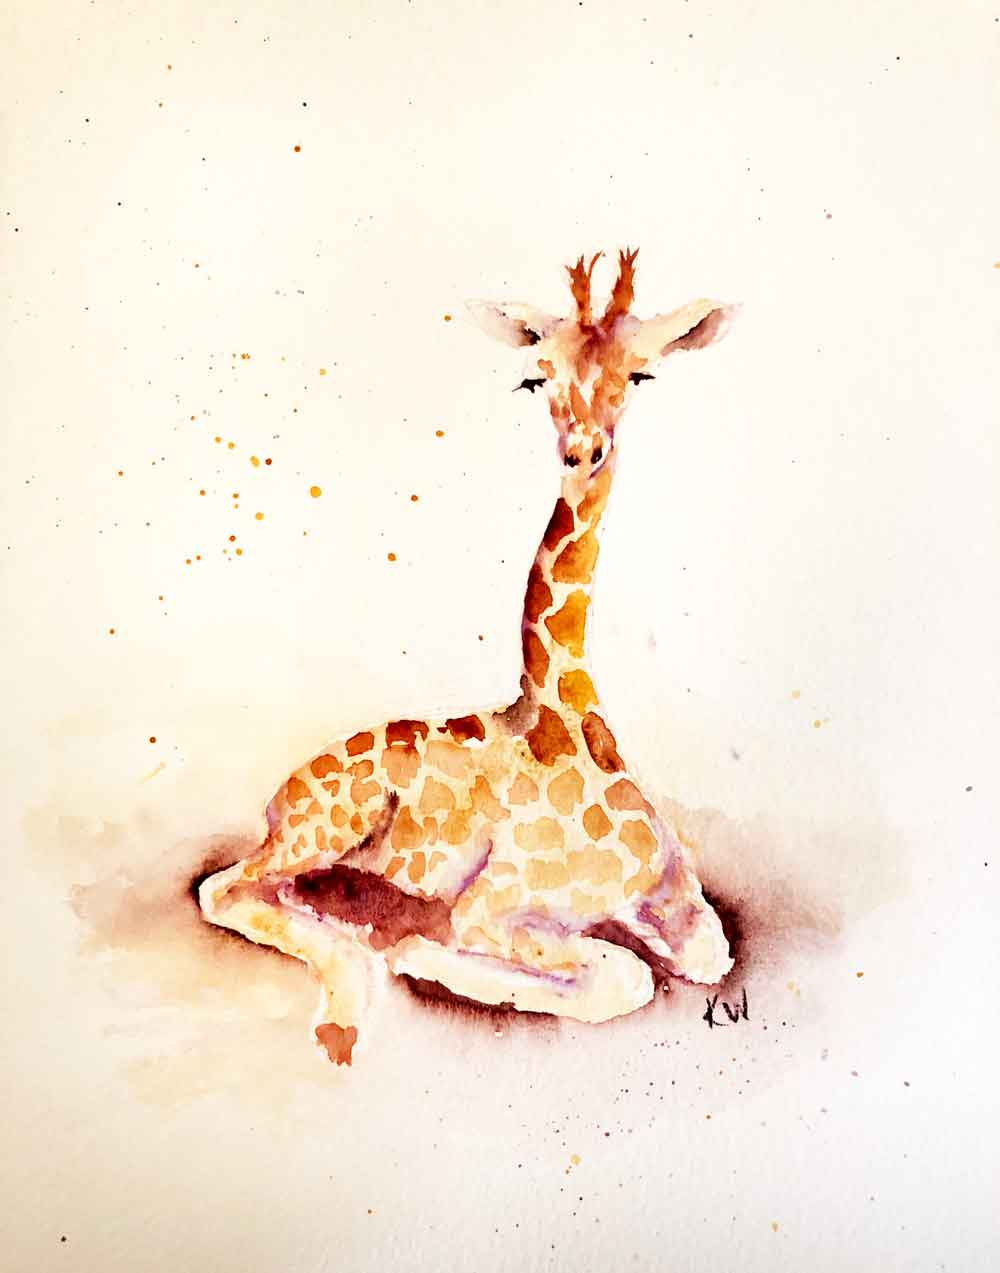 Giraffes no 5 - Seated (Watercolour on paper 8.5 x 11 inches)